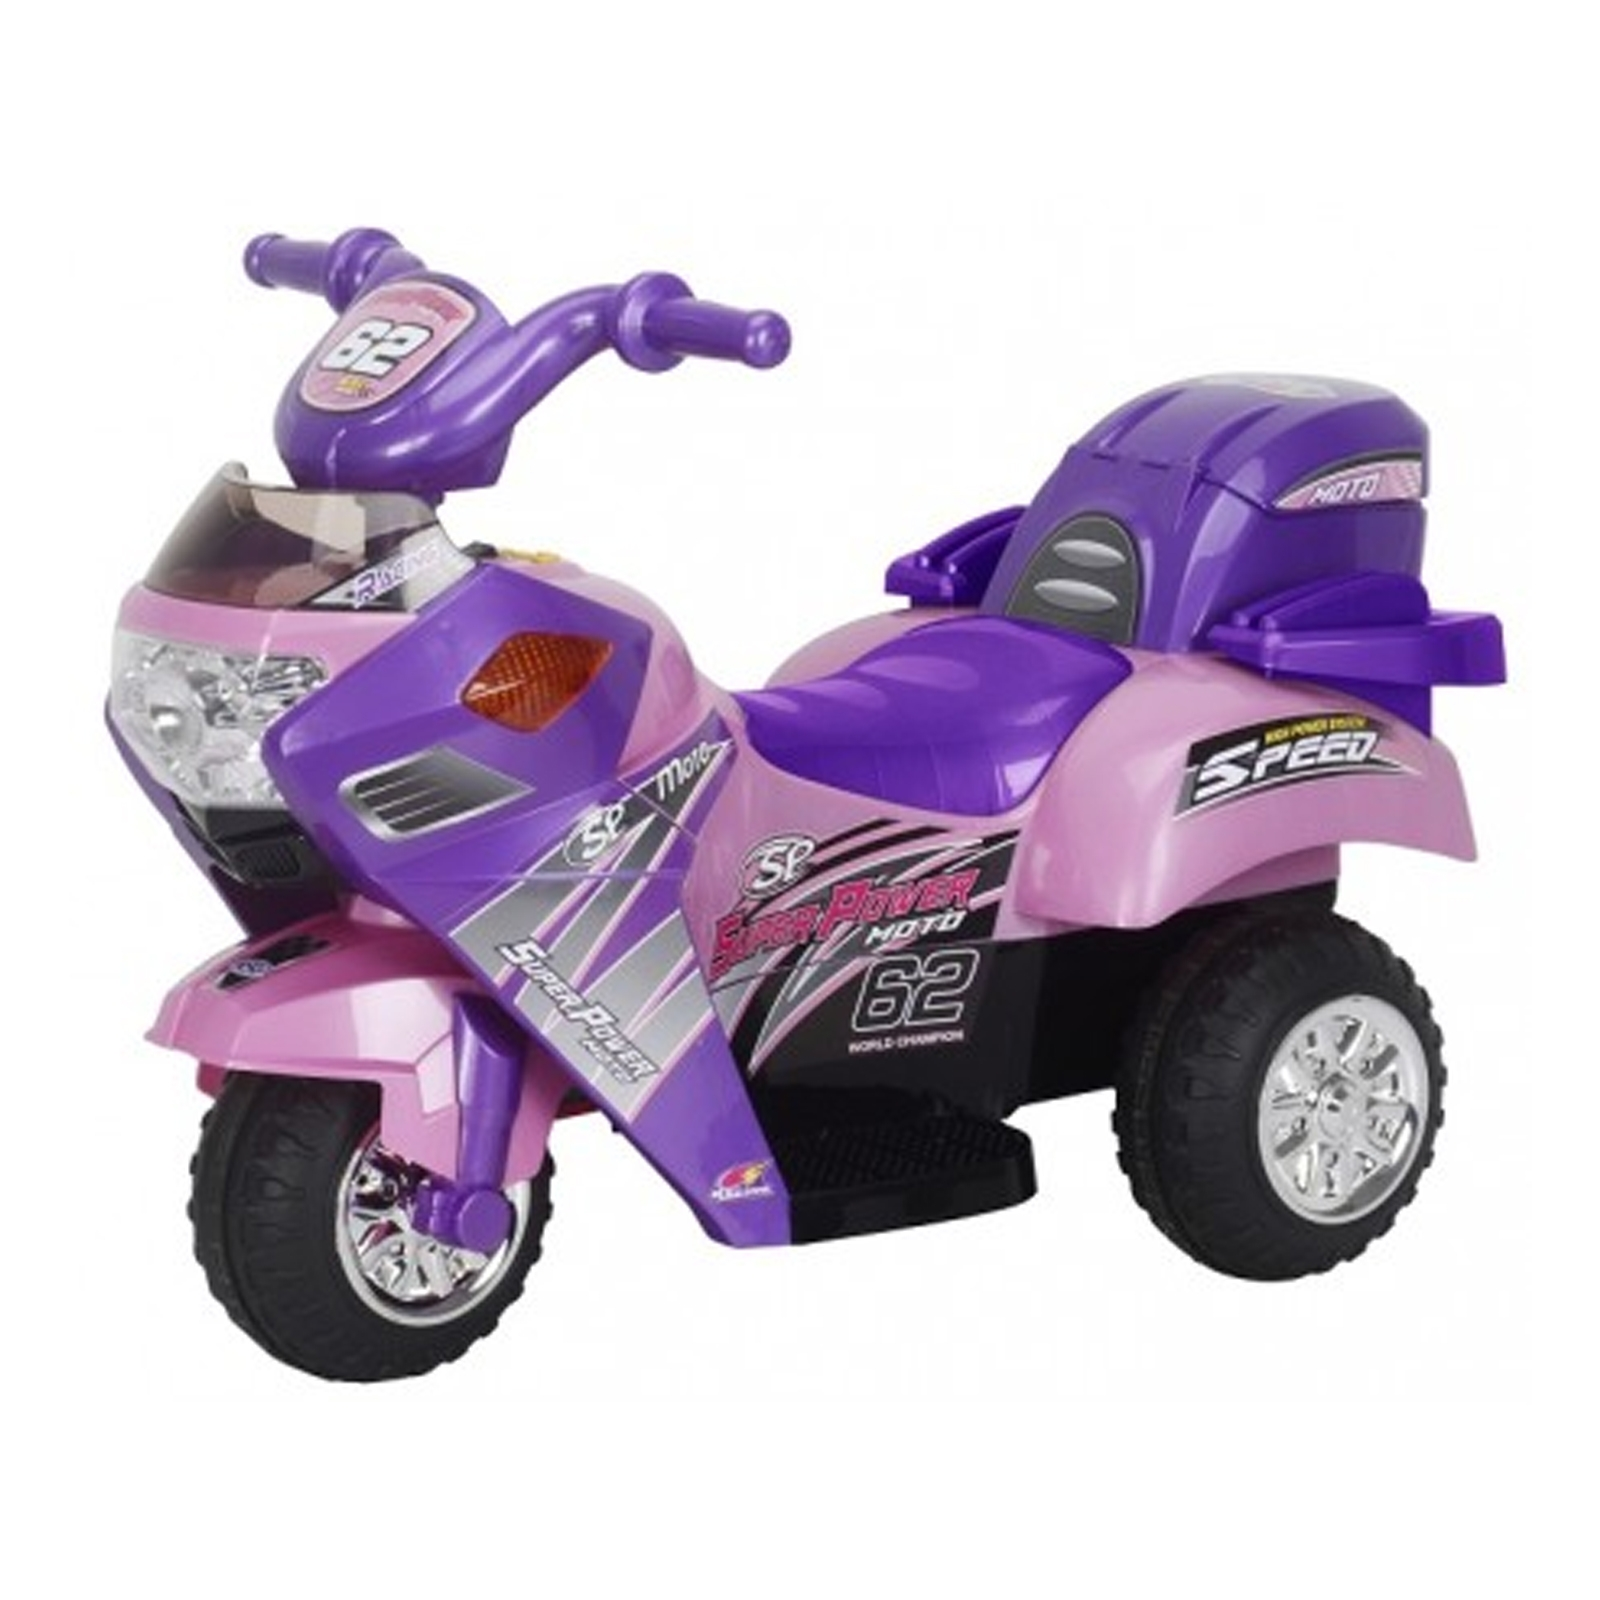 Little 3 Wheeler Kids Ride On Battery Powered 6V Mini Motorcycle (2 Colors)